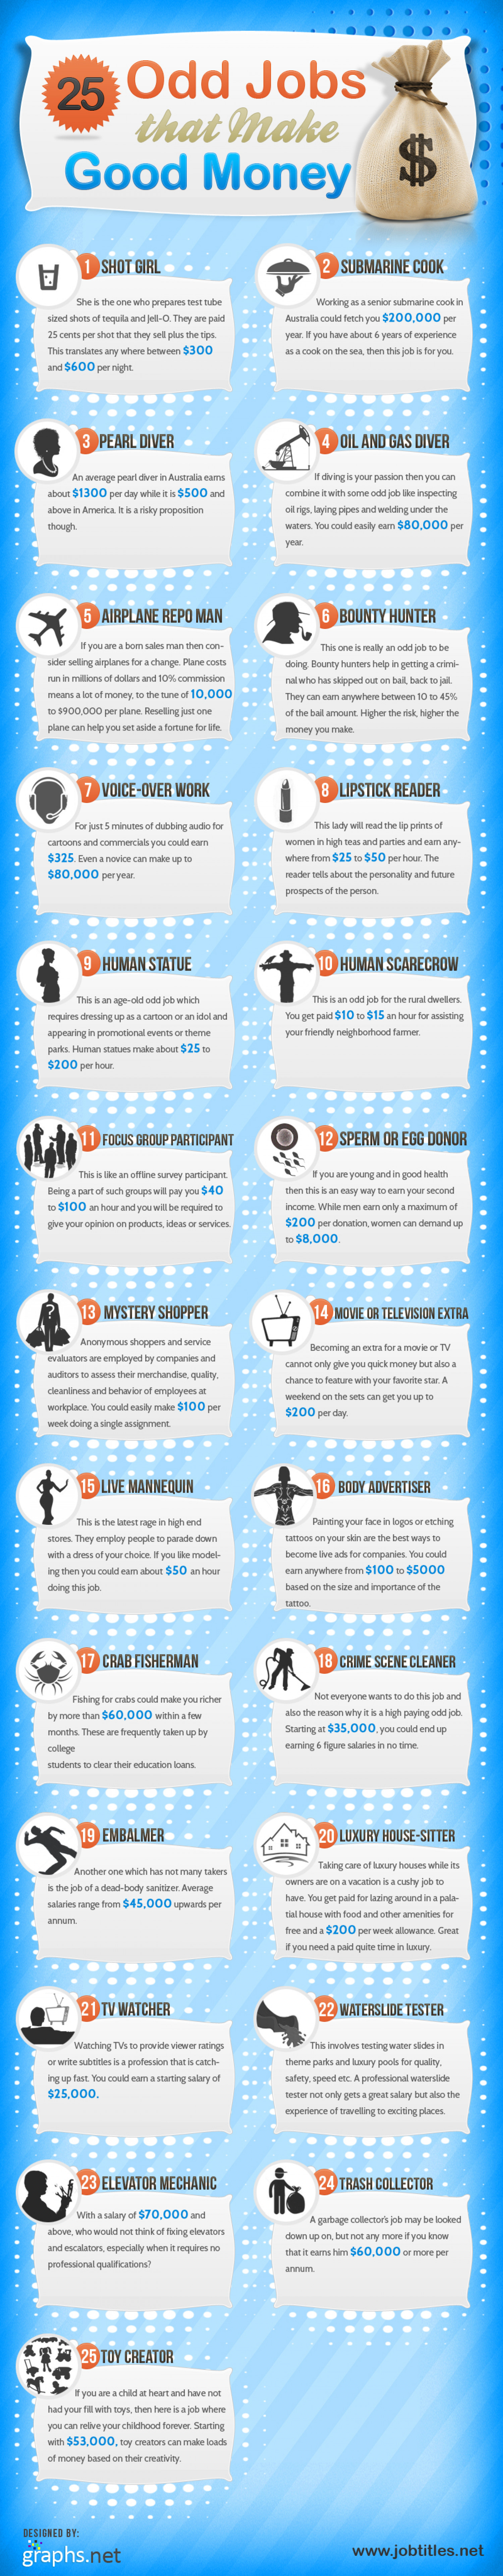 25 Odd Jobs that Make Good Money Infographic